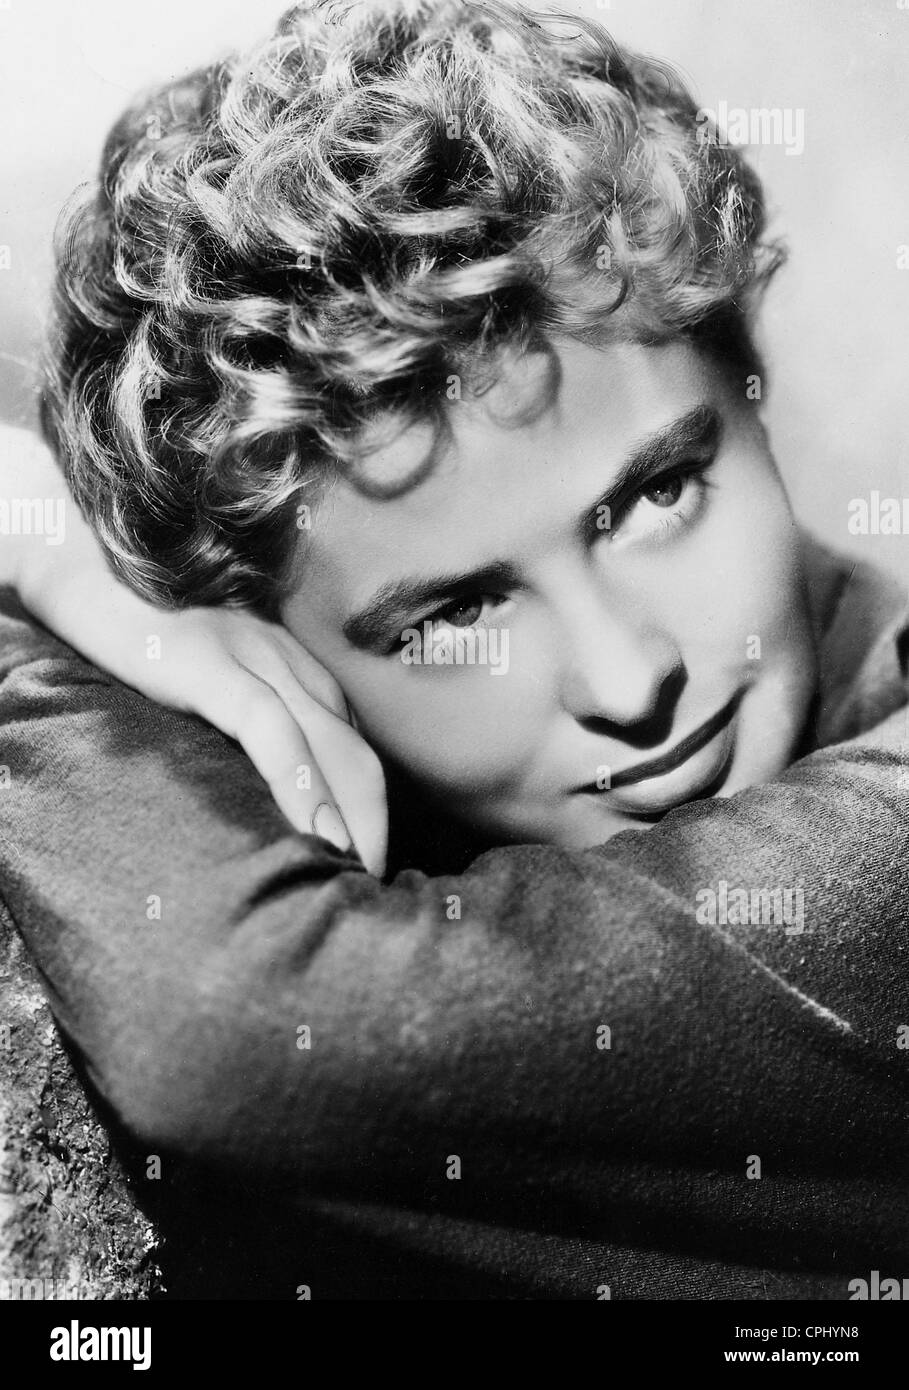 Ingrid Bergman in 'For Whom the Bell Tolls', 1943 - Stock Image